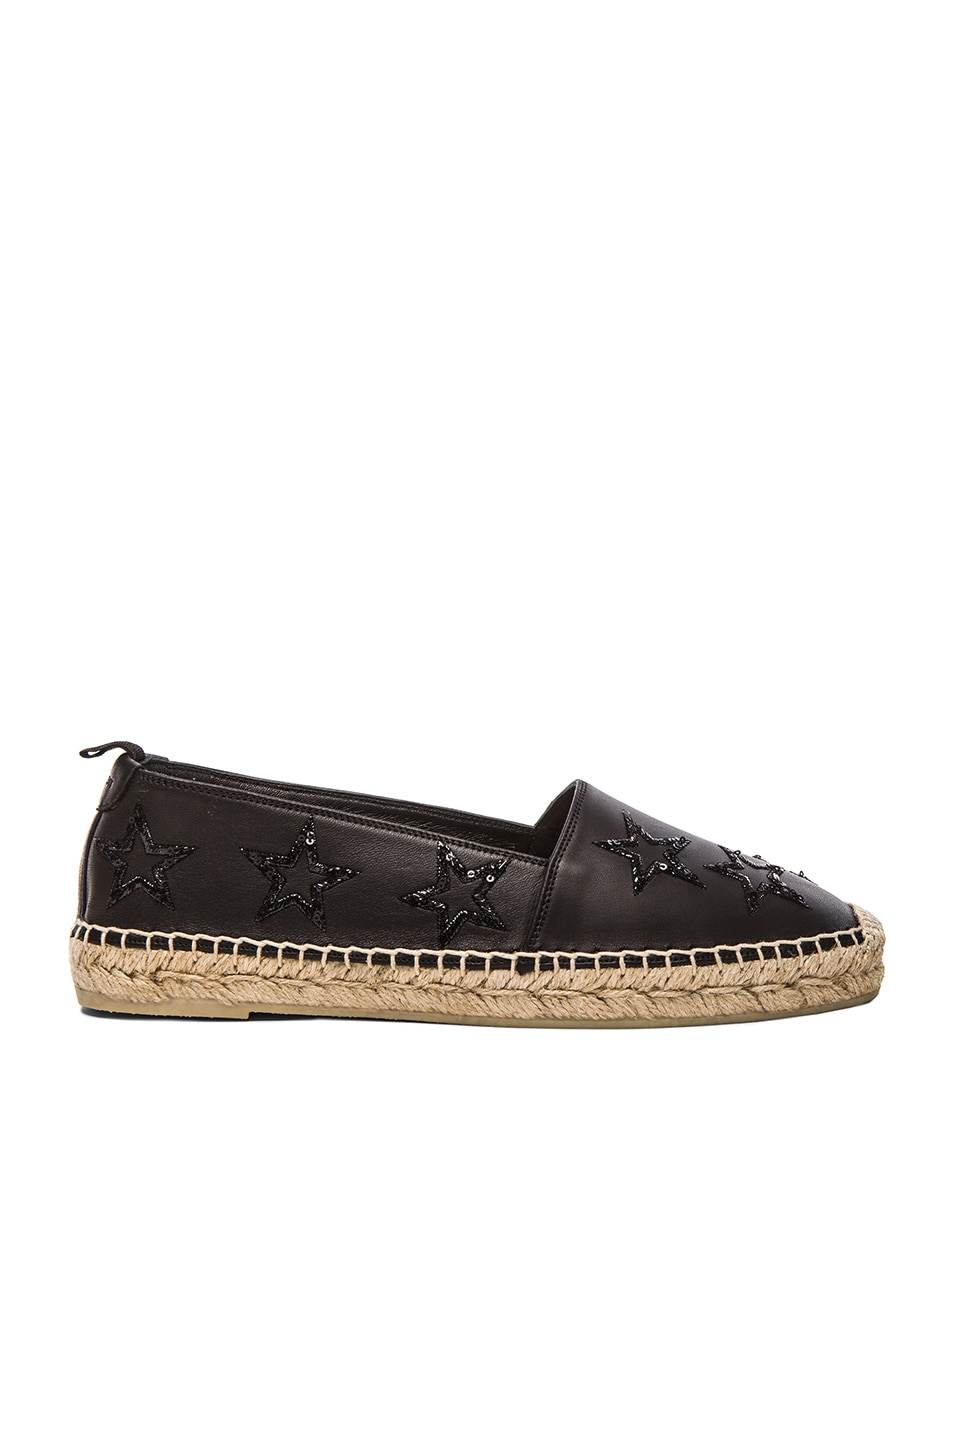 Image 1 of Saint Laurent Star Studded Leather Espadrilles in Black